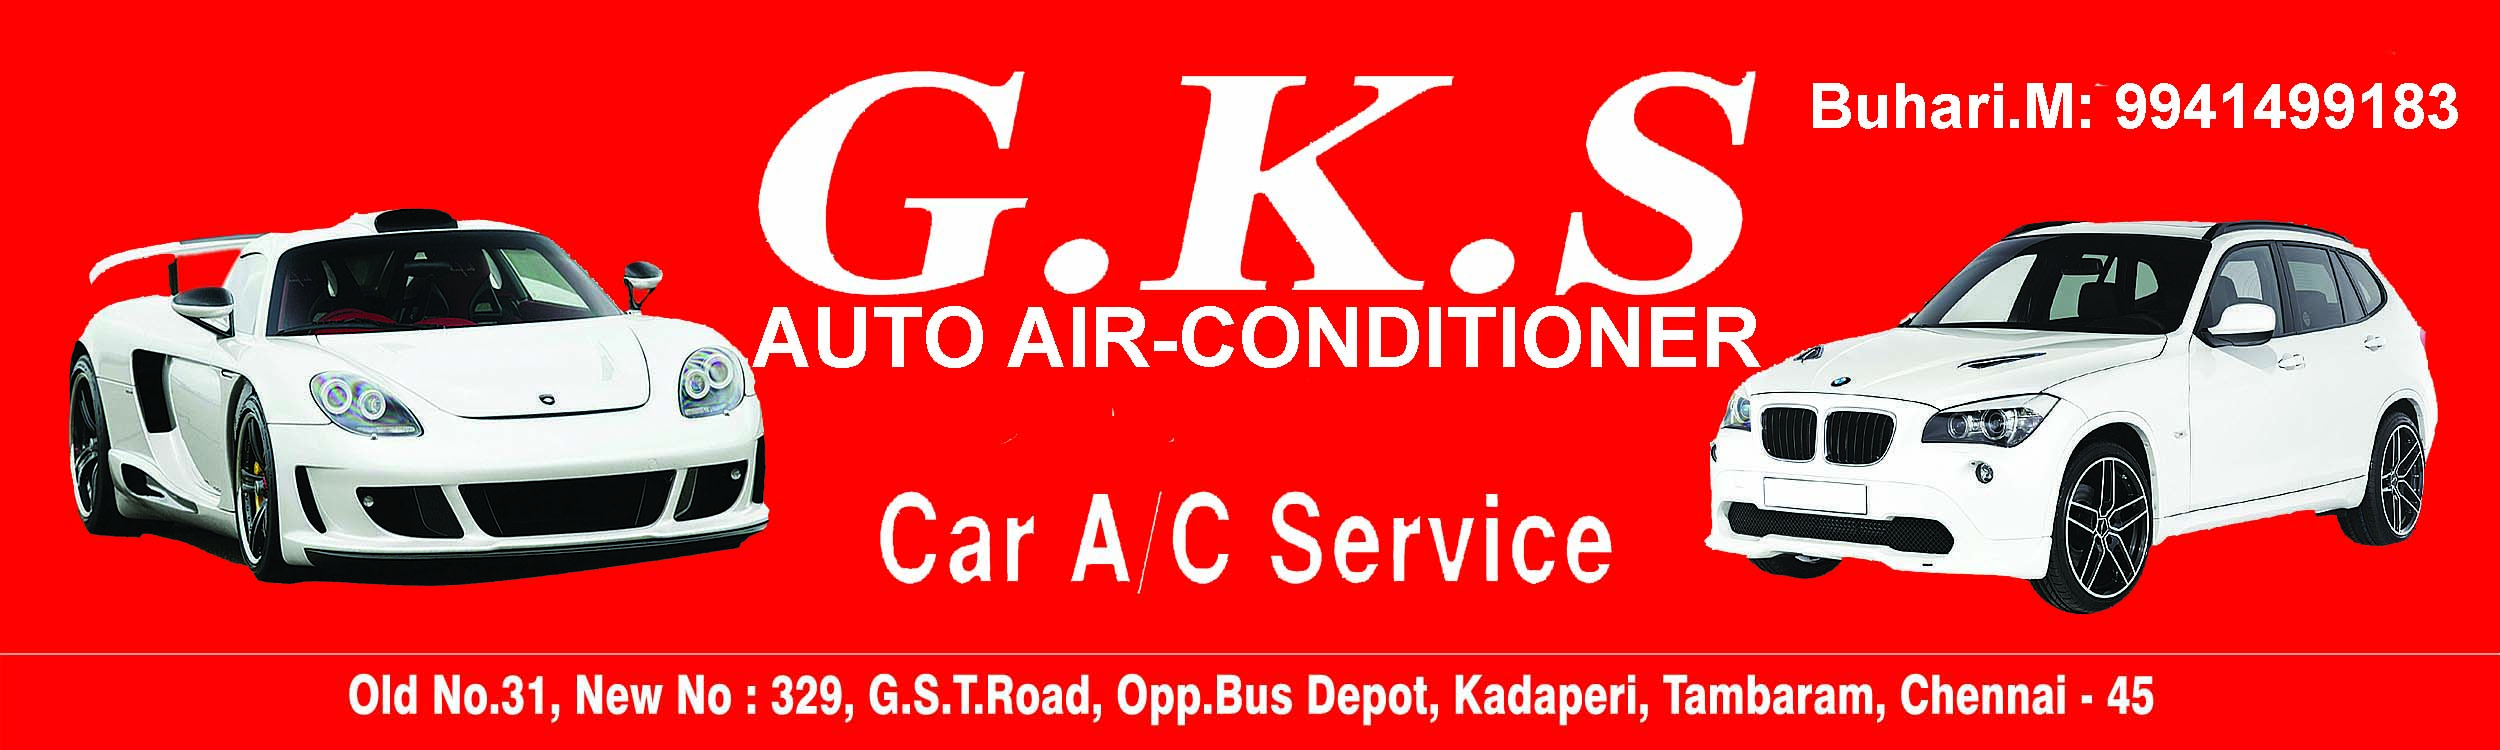 GKS Auto Air-Conditioner